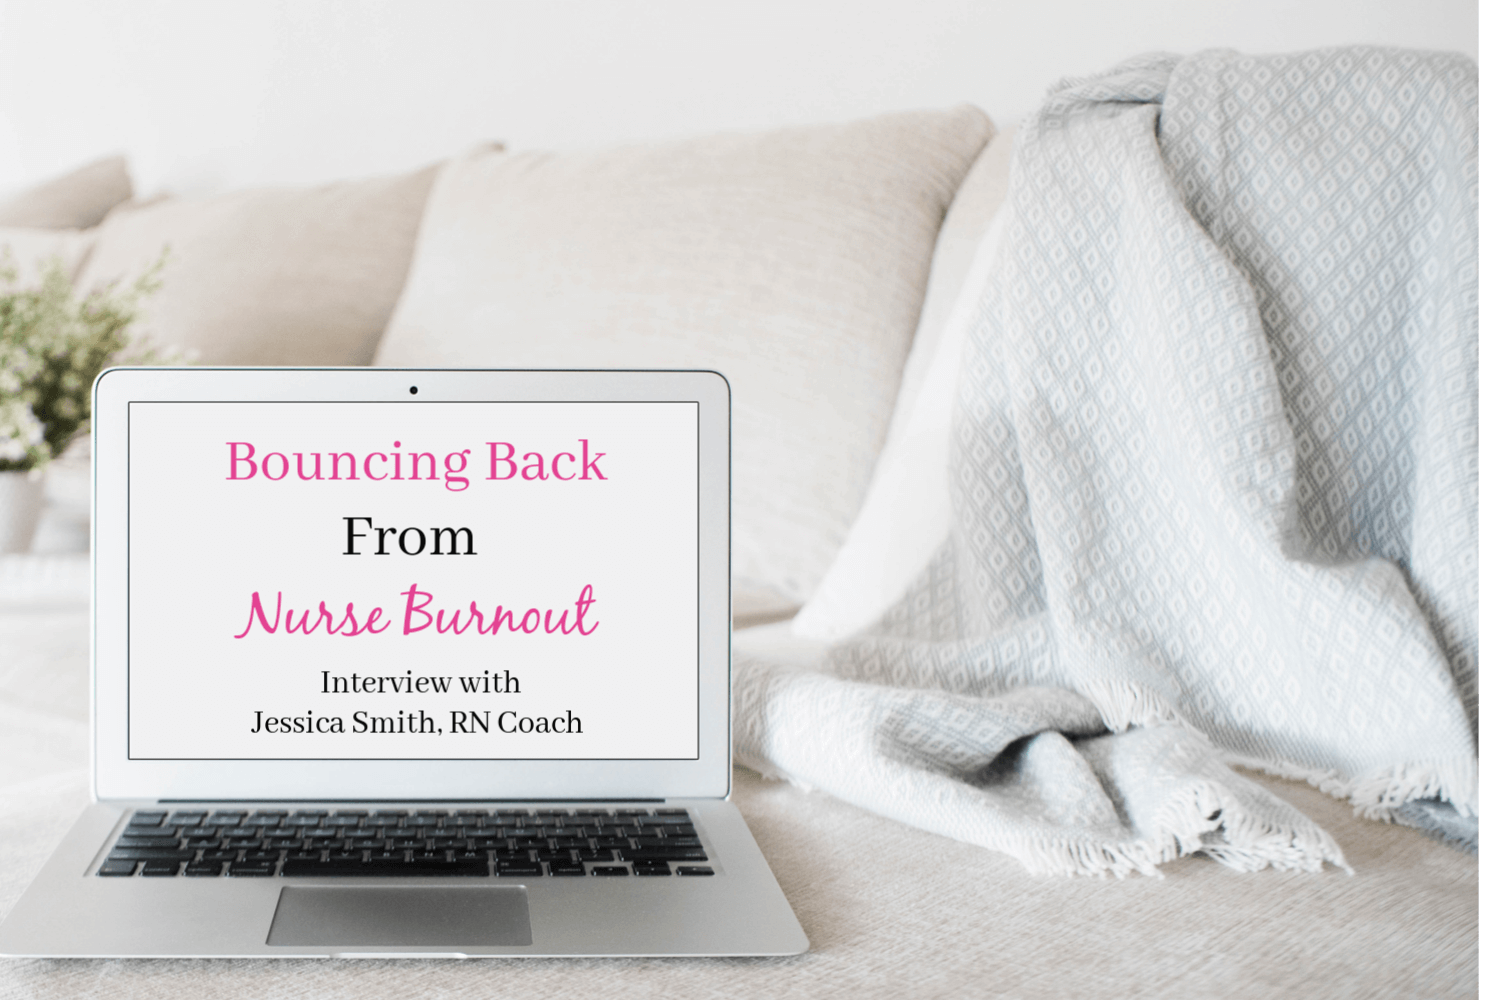 Bouncing Back From Burnout Interview With Jessica Smith, RN